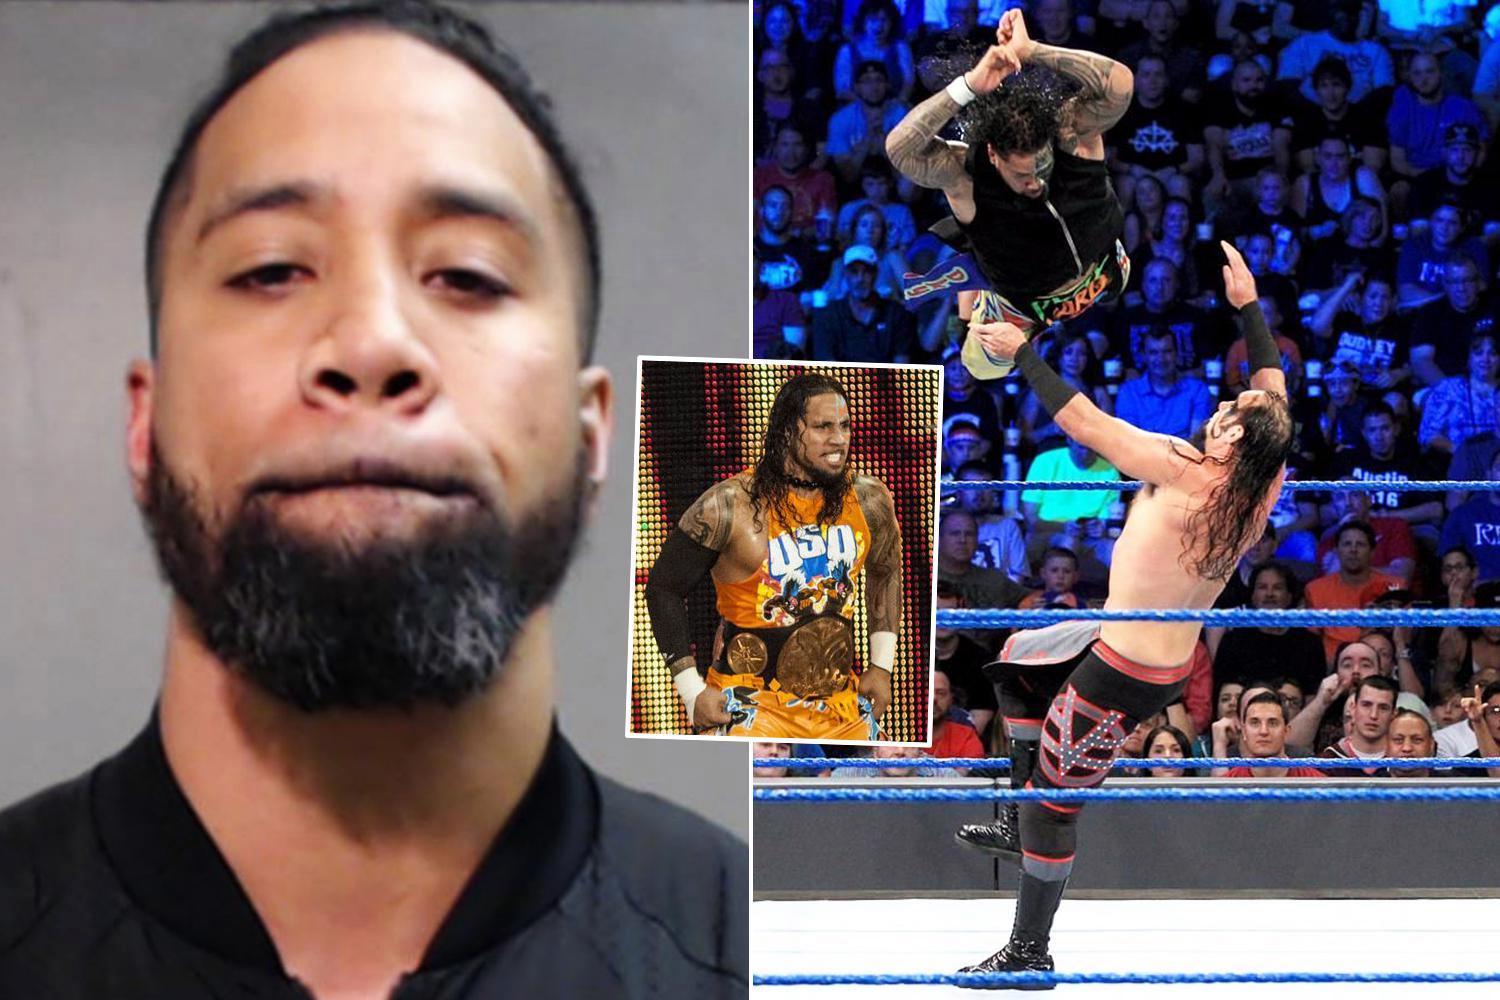 WWE star Jey Uso arrested on suspicion of drink driving after being pulled over by cops in Texas